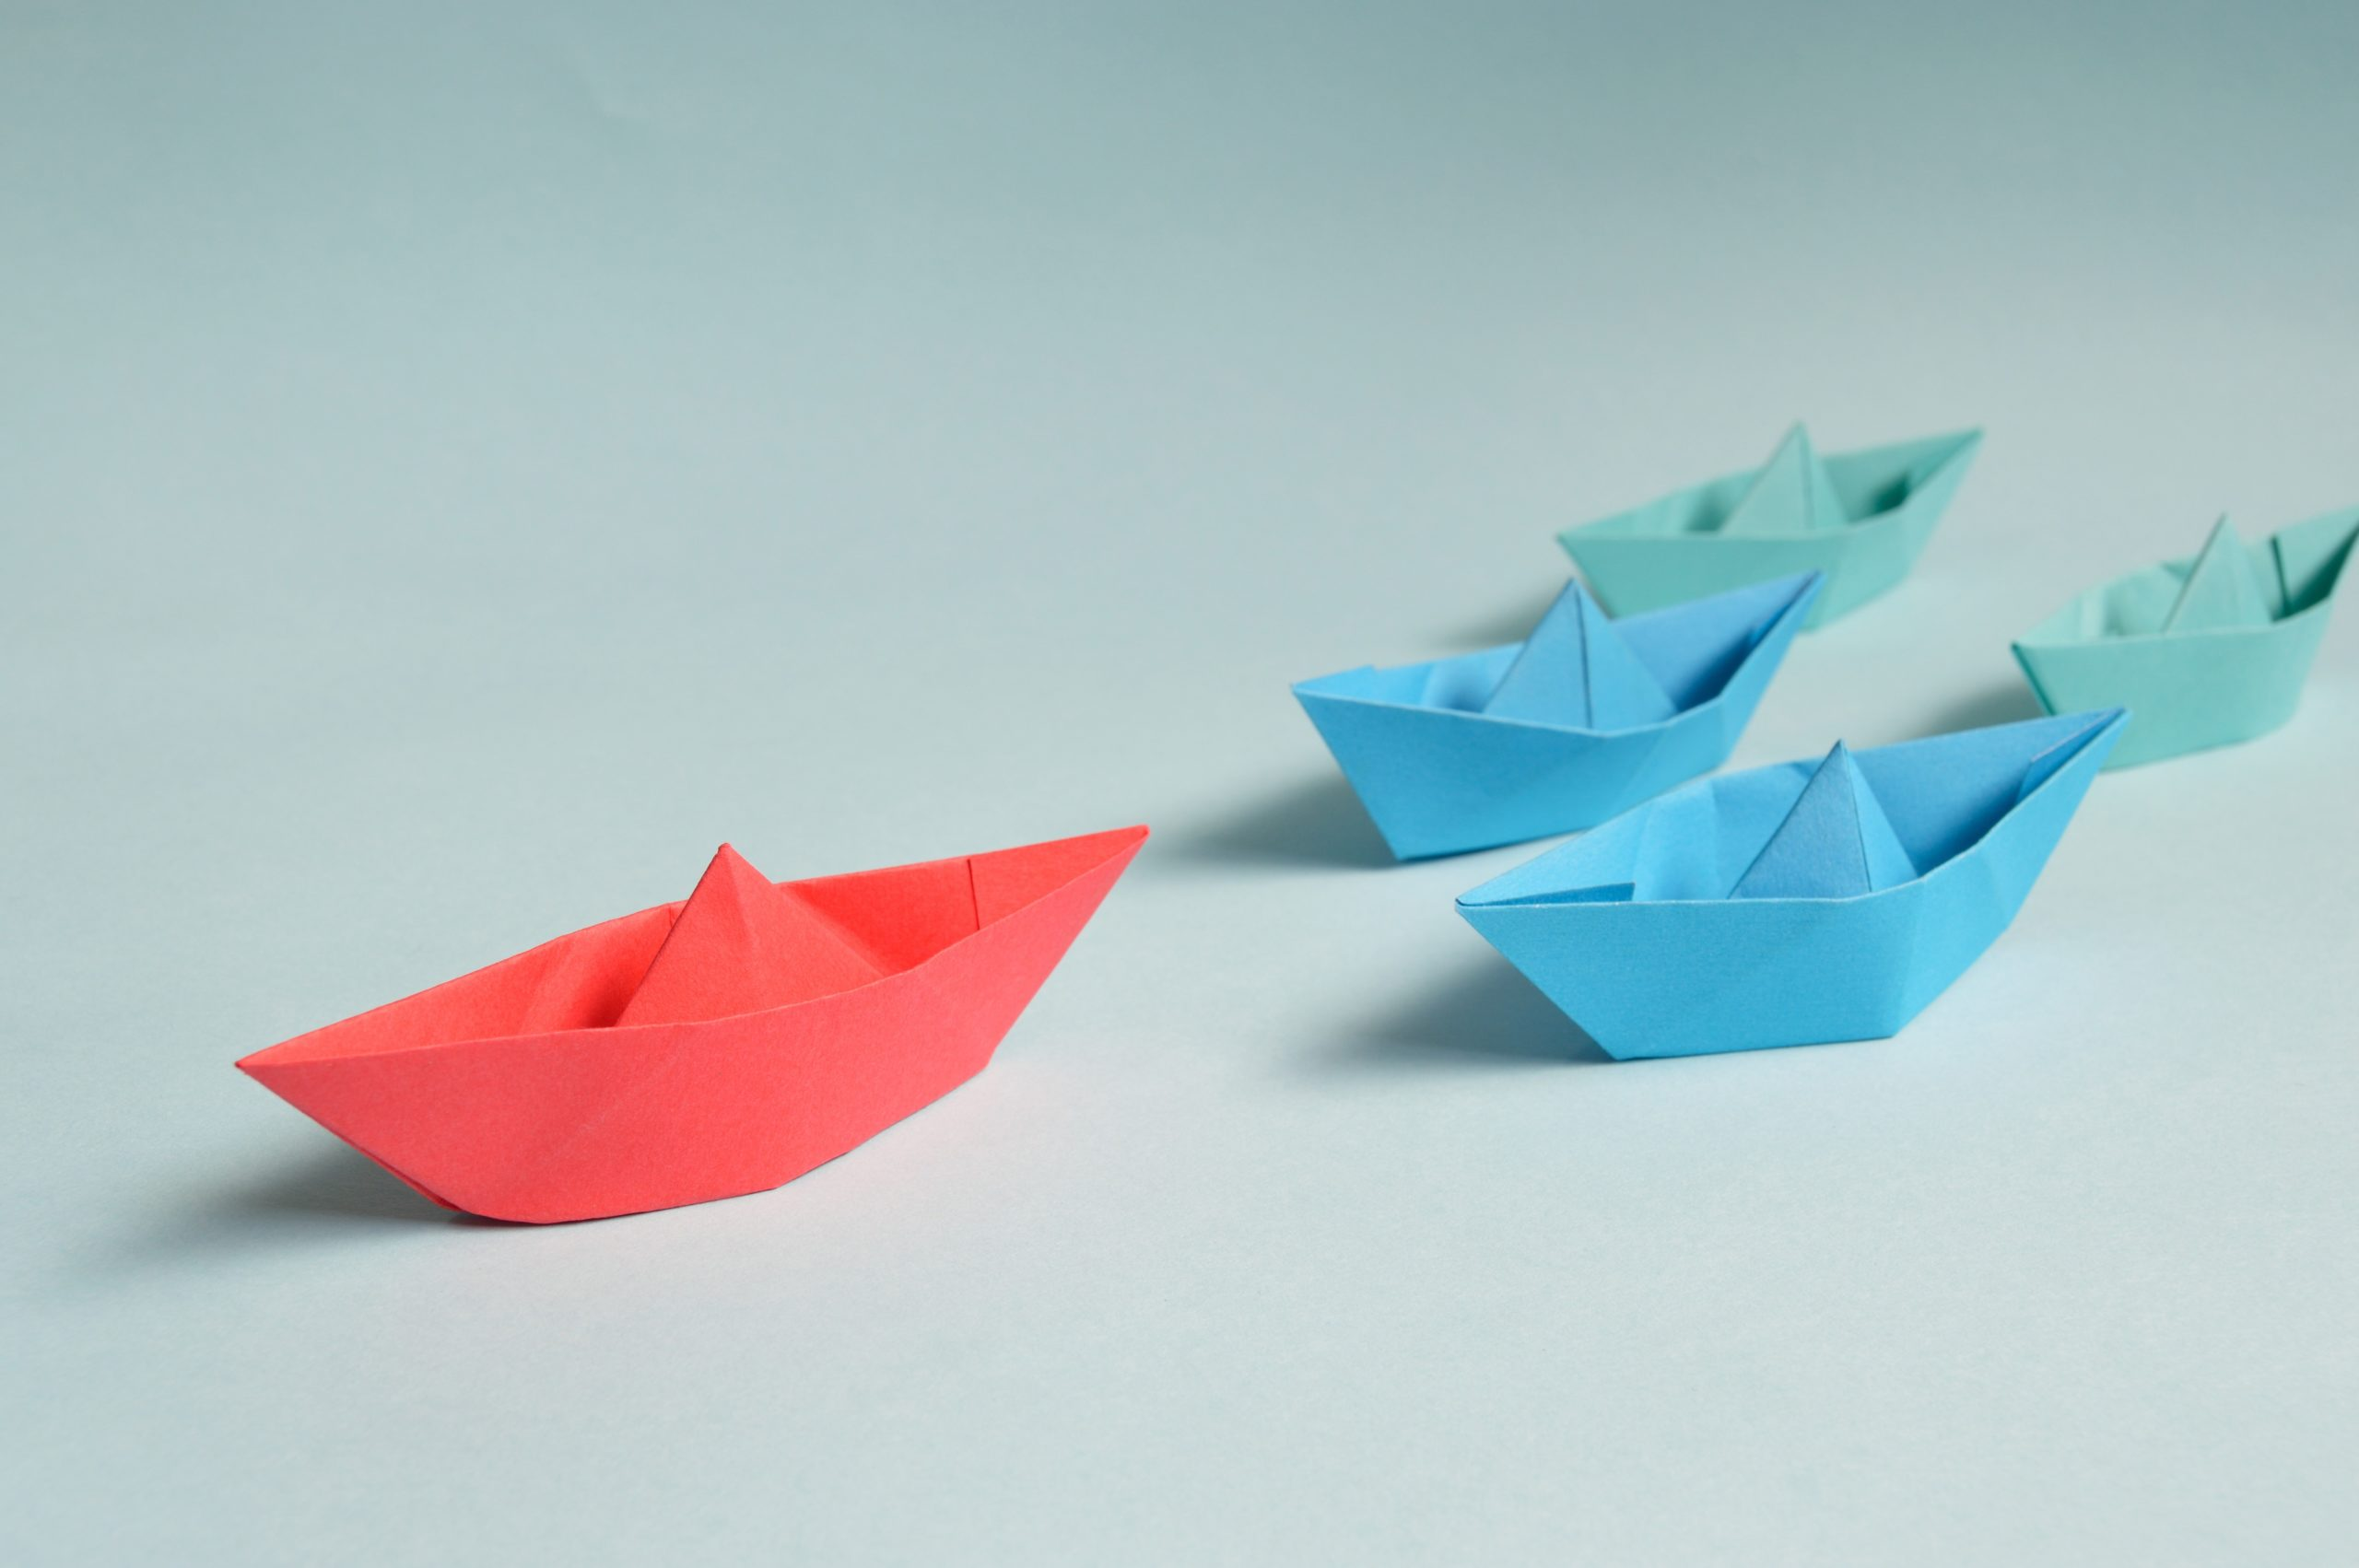 4 Things People Want from Leaders